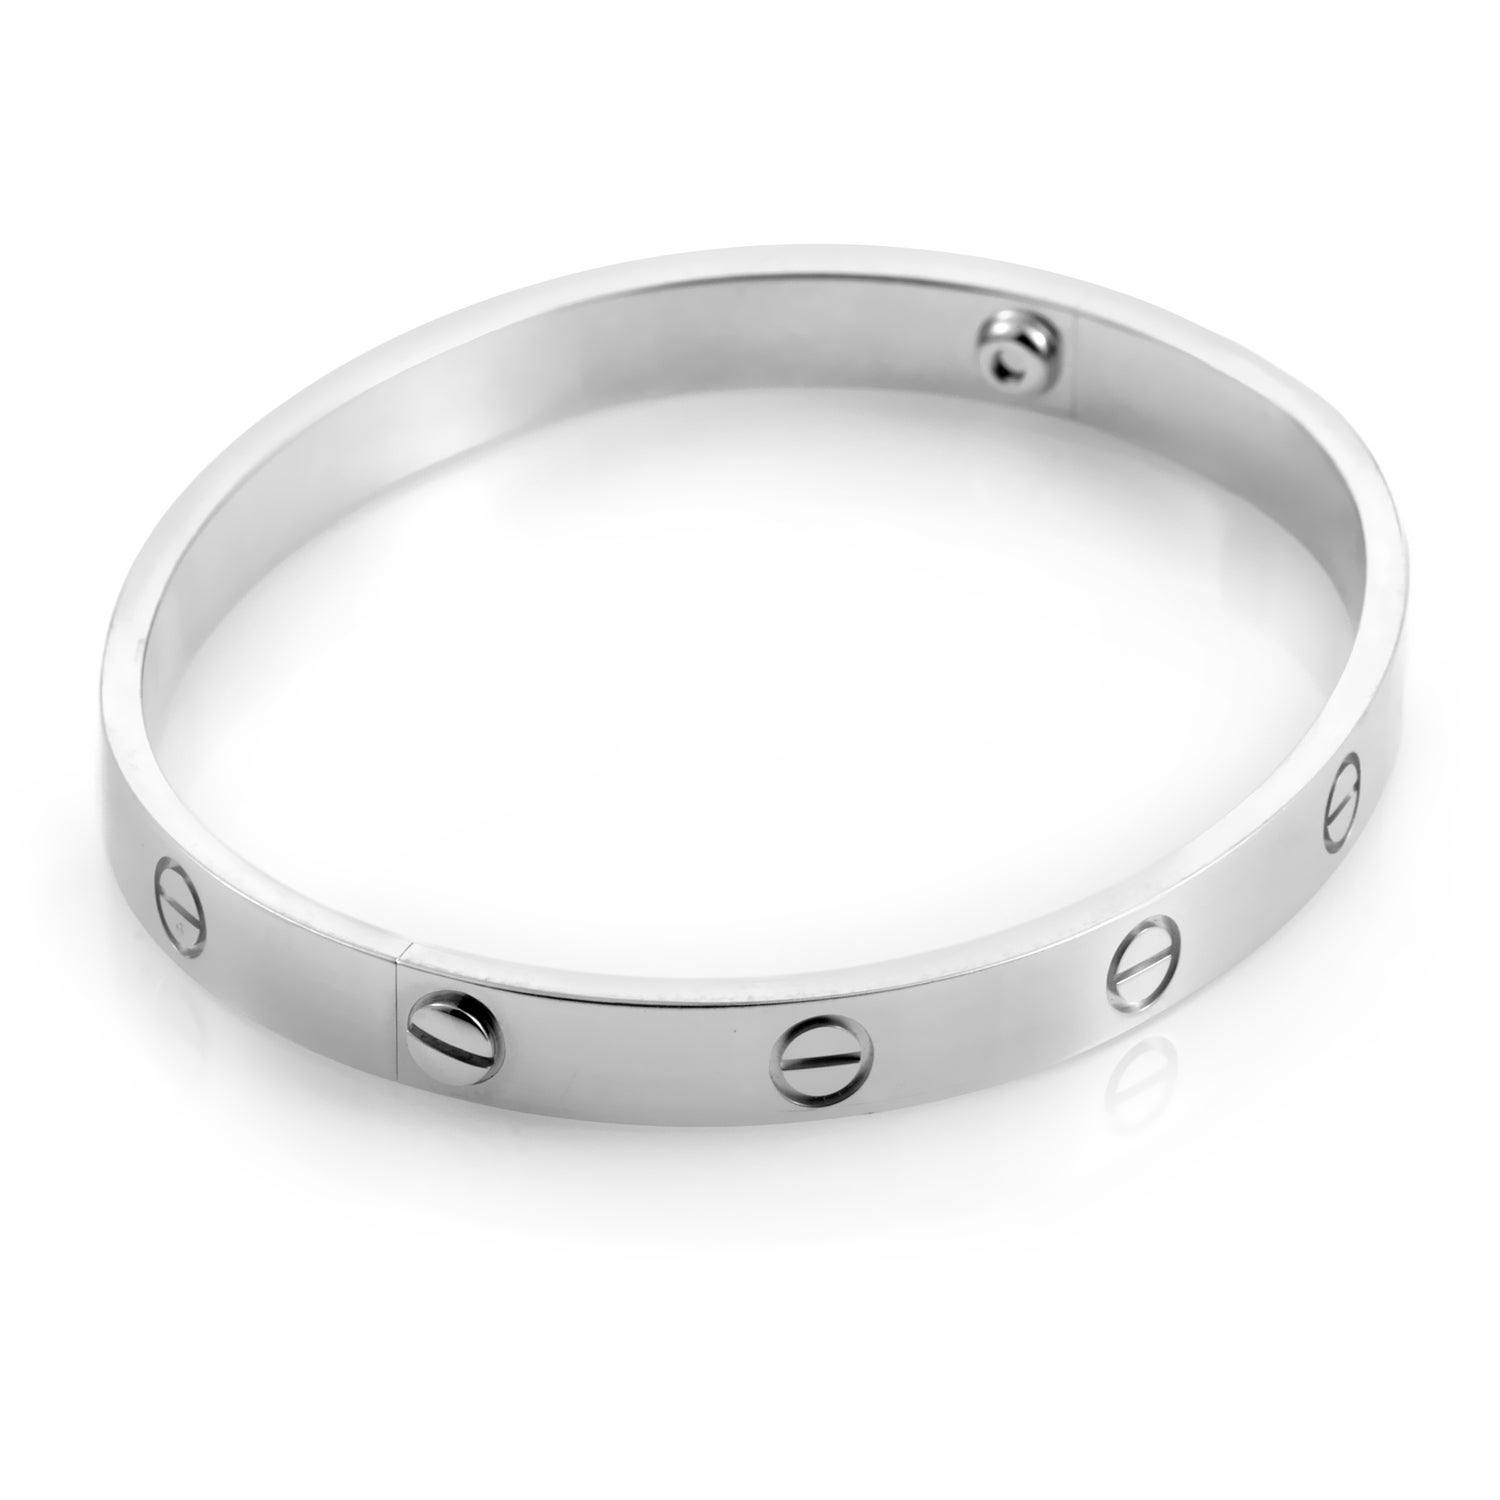 ce2b13492a1 Shop Cartier LOVE White Gold Bracelet Size 17 - Free Shipping Today ...